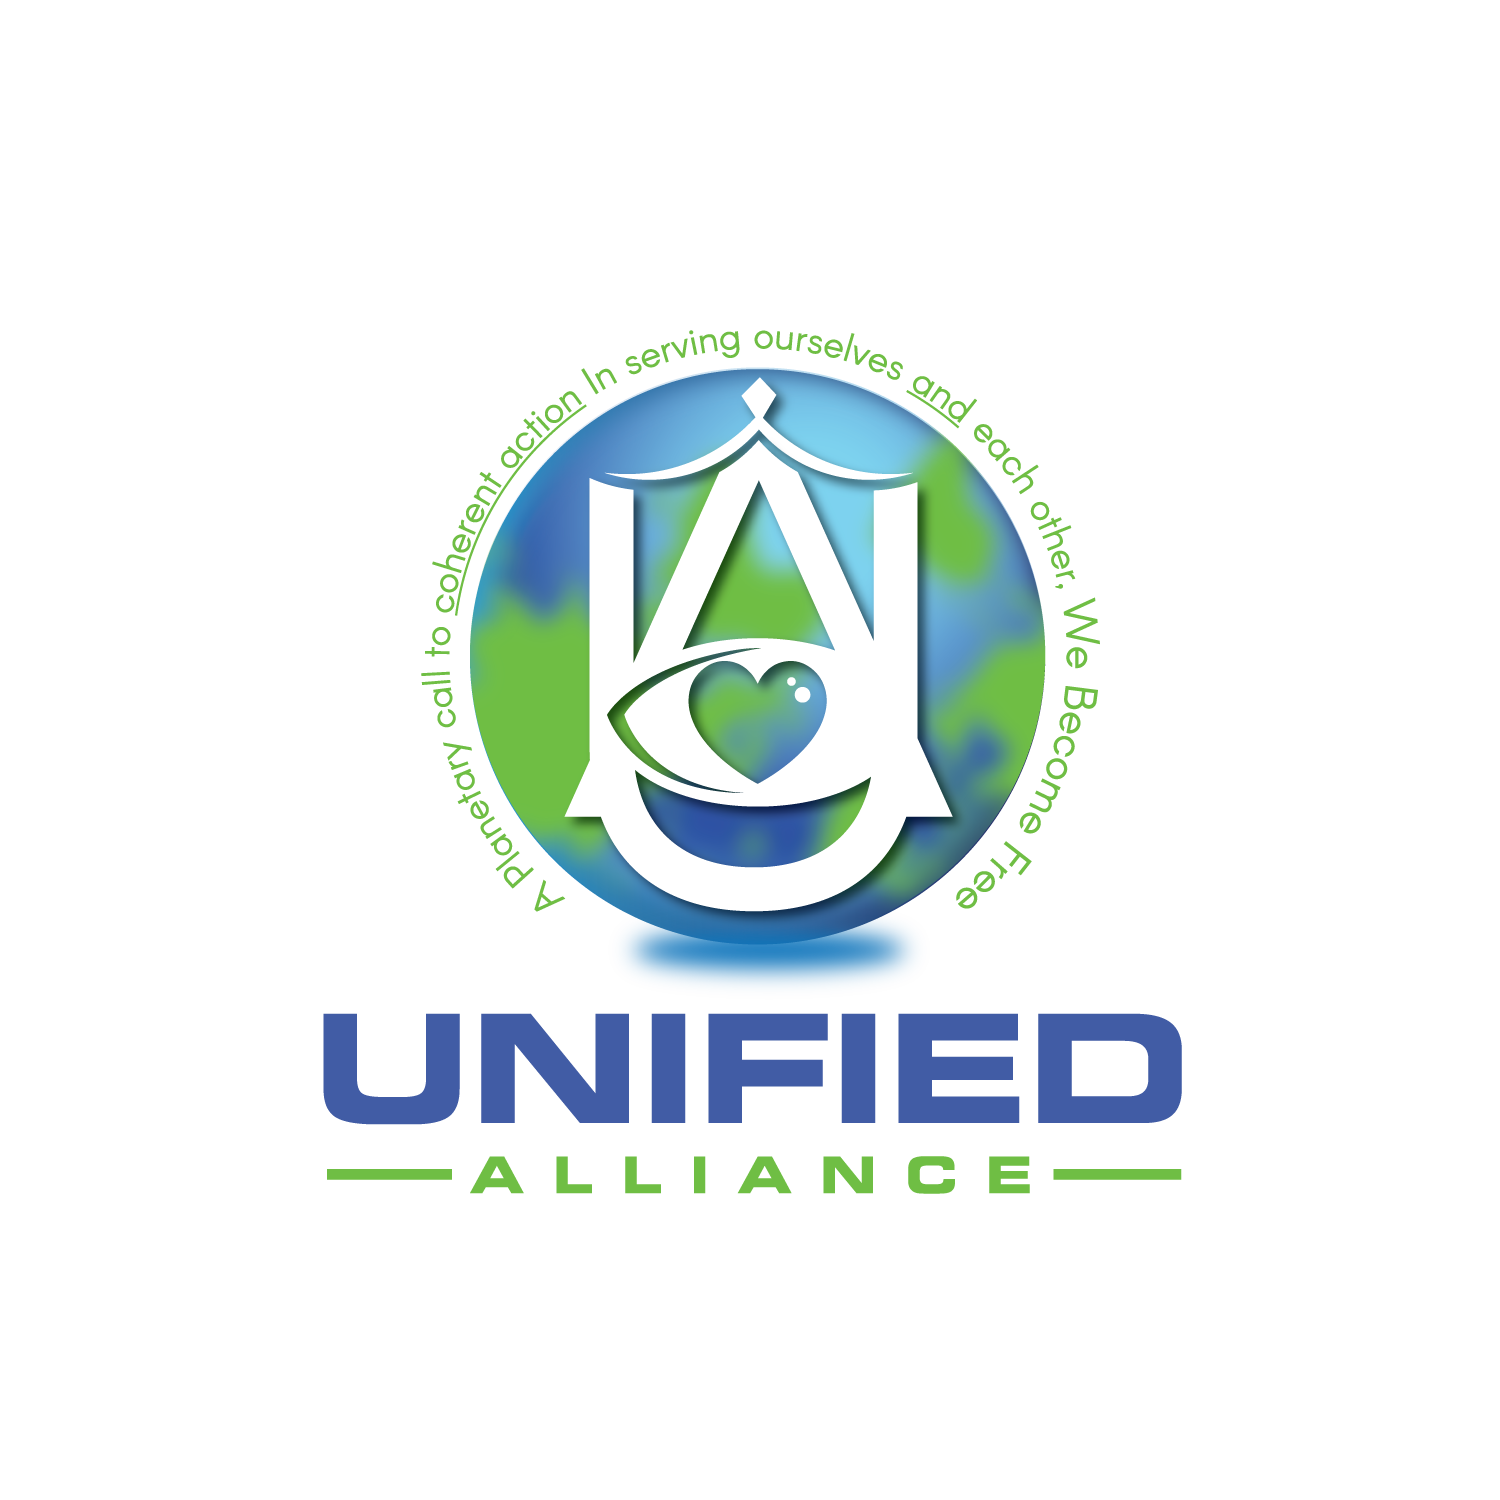 Unified Alliance